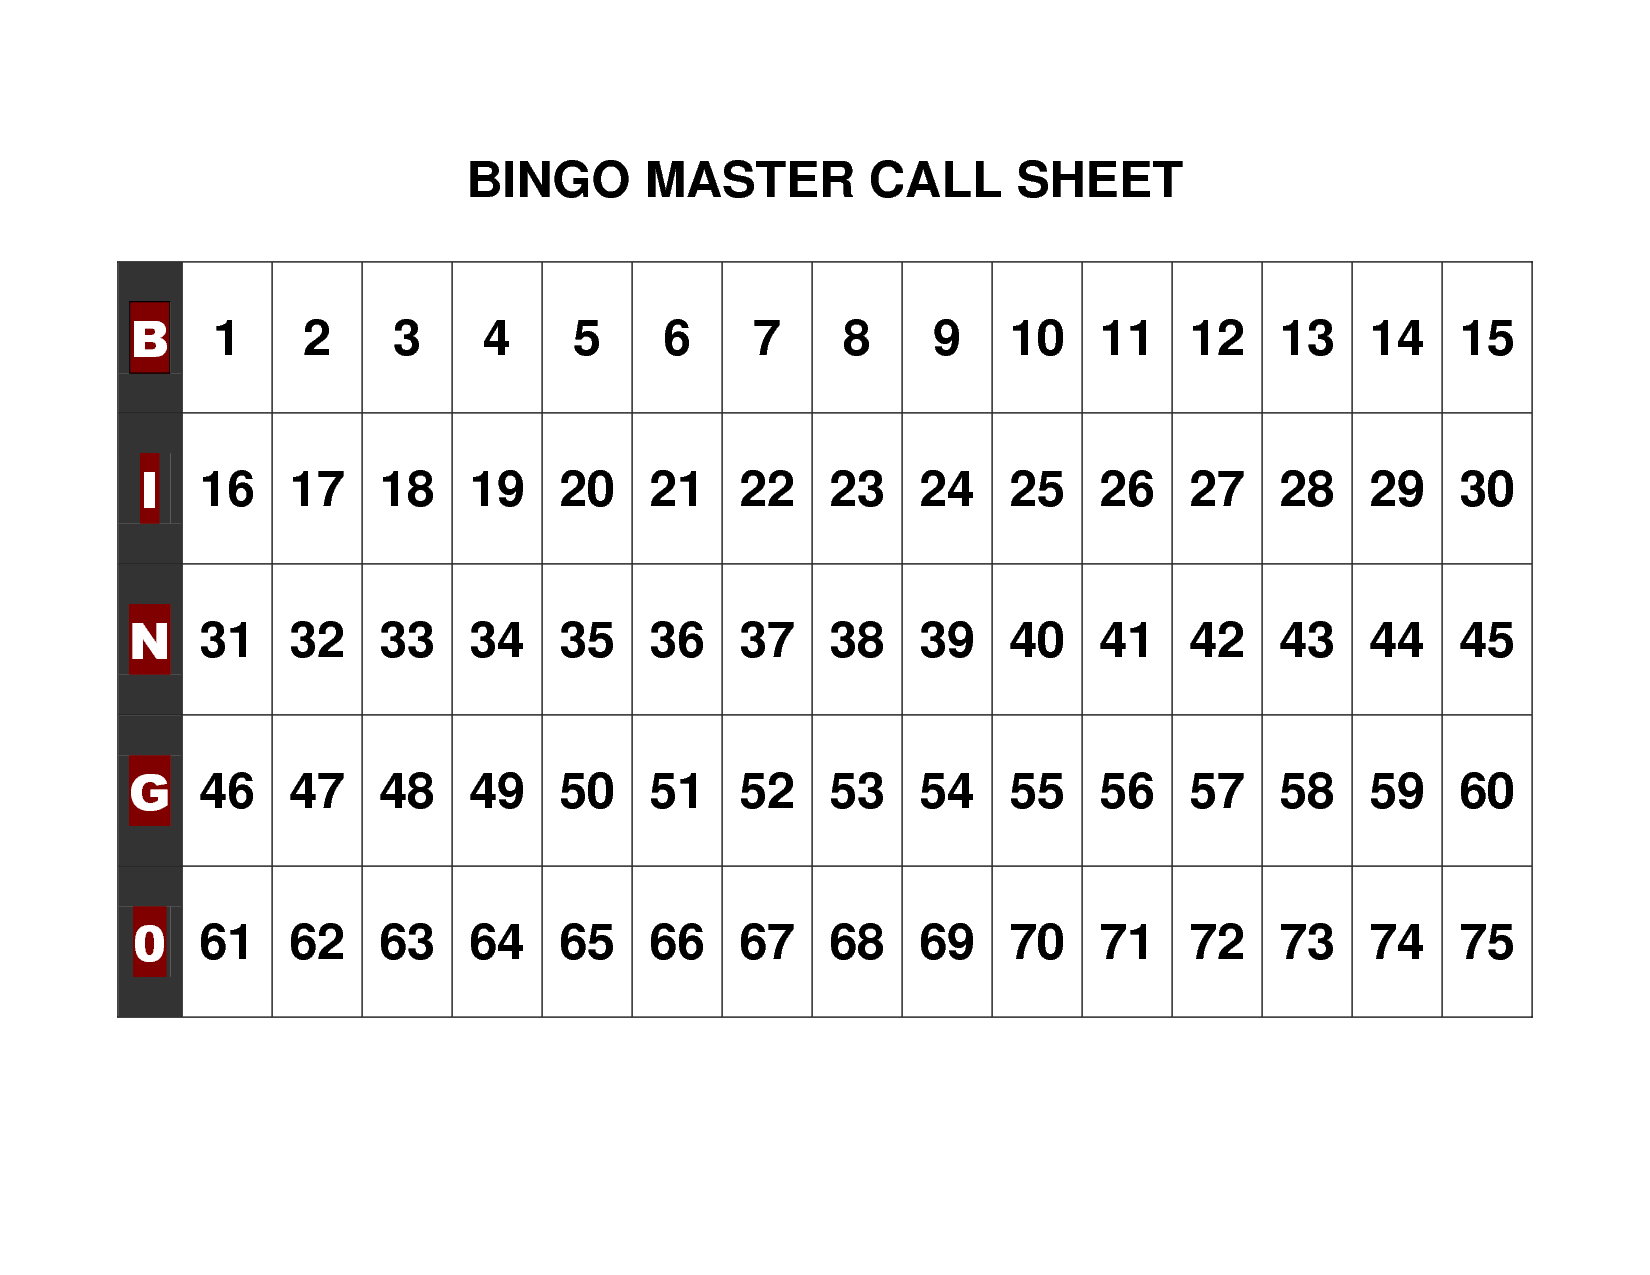 Free+Printable+Bingo+Call+Sheet | Bingo | Pinterest | Bingo, Bingo - Free Printable Bingo Cards Random Numbers